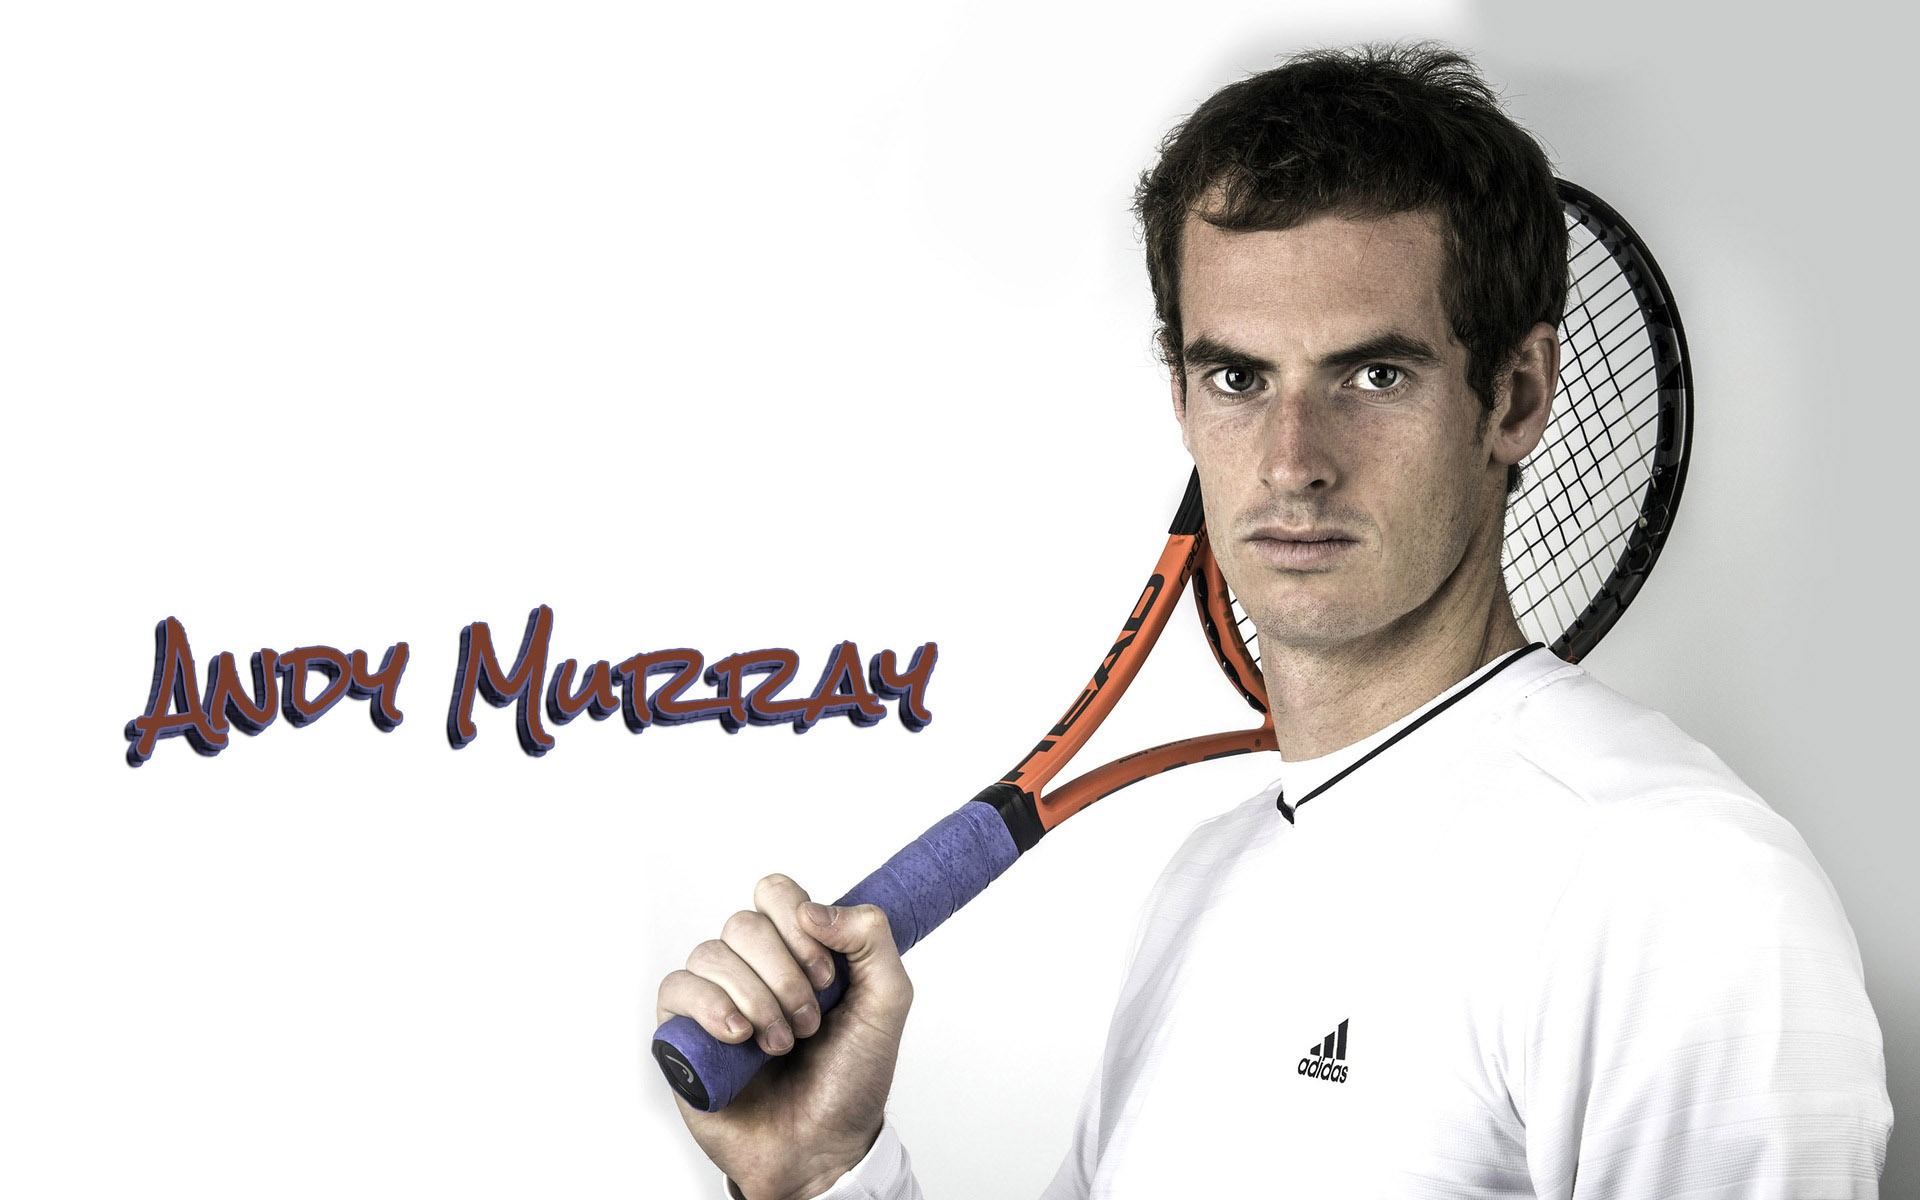 Andy Murray HD Wallpaper 1920x1200